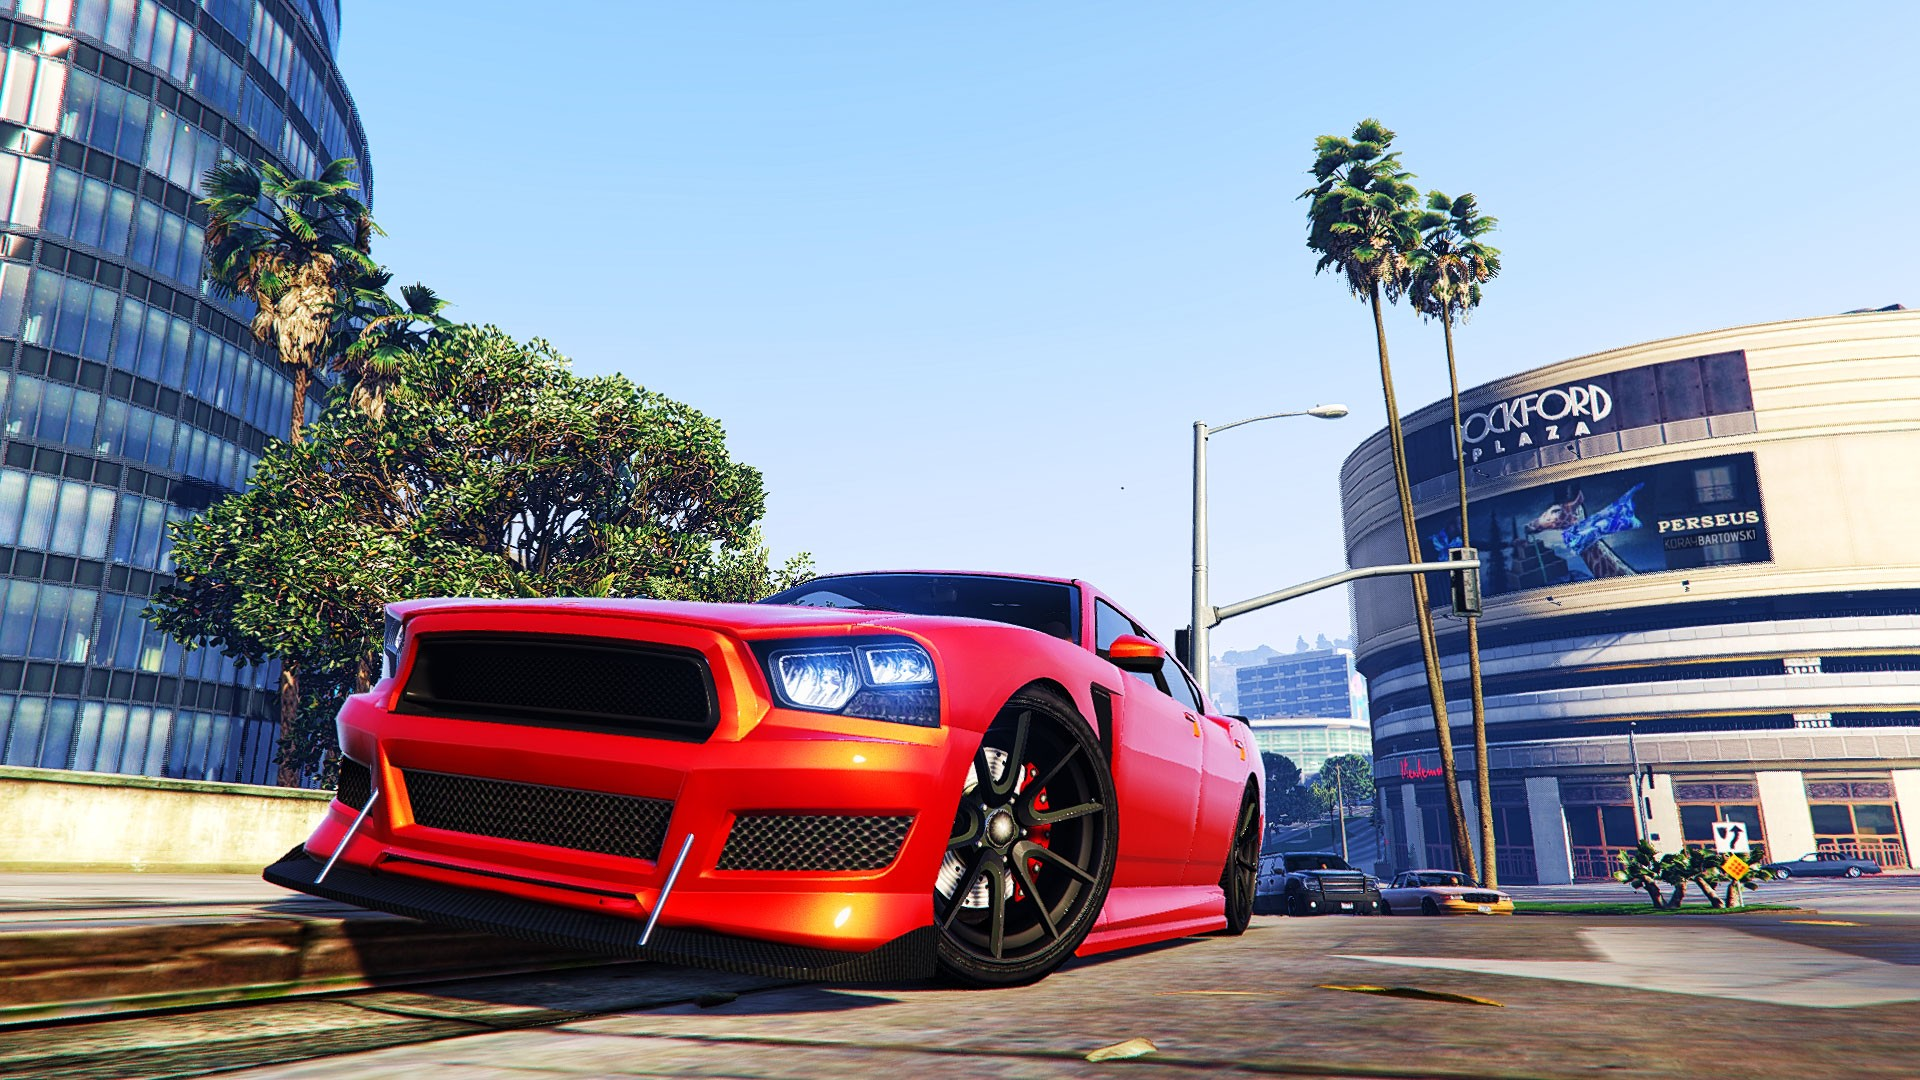 Car 5760x1080 Wallpaper Grand Theft Auto V Car Building Video Games Wallpapers